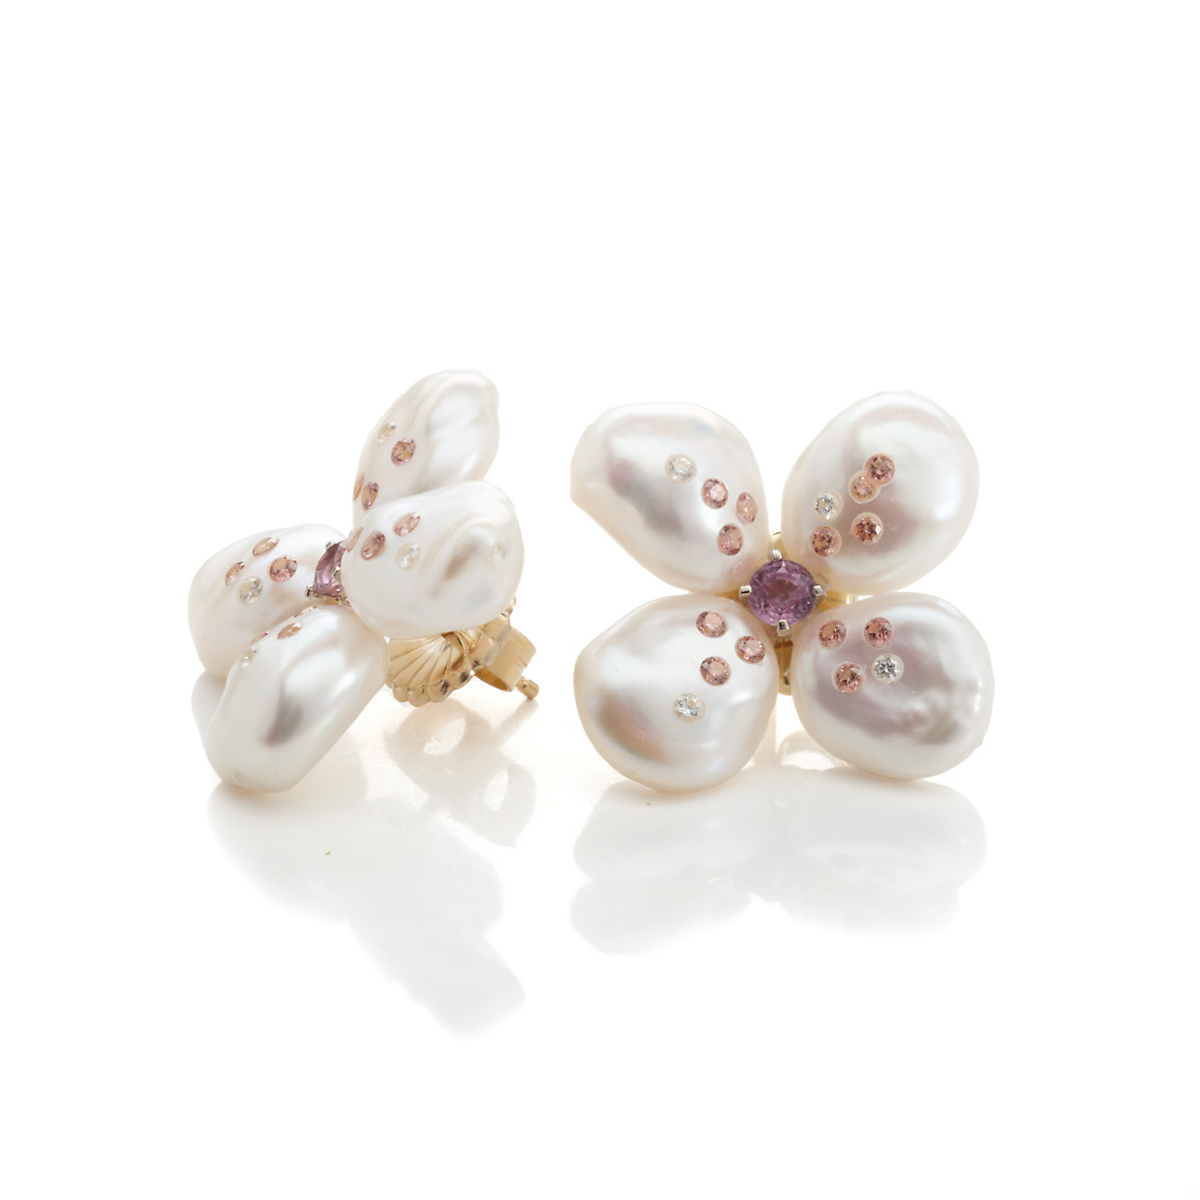 Russell Trusso Mother of Pearl Flower Earrings